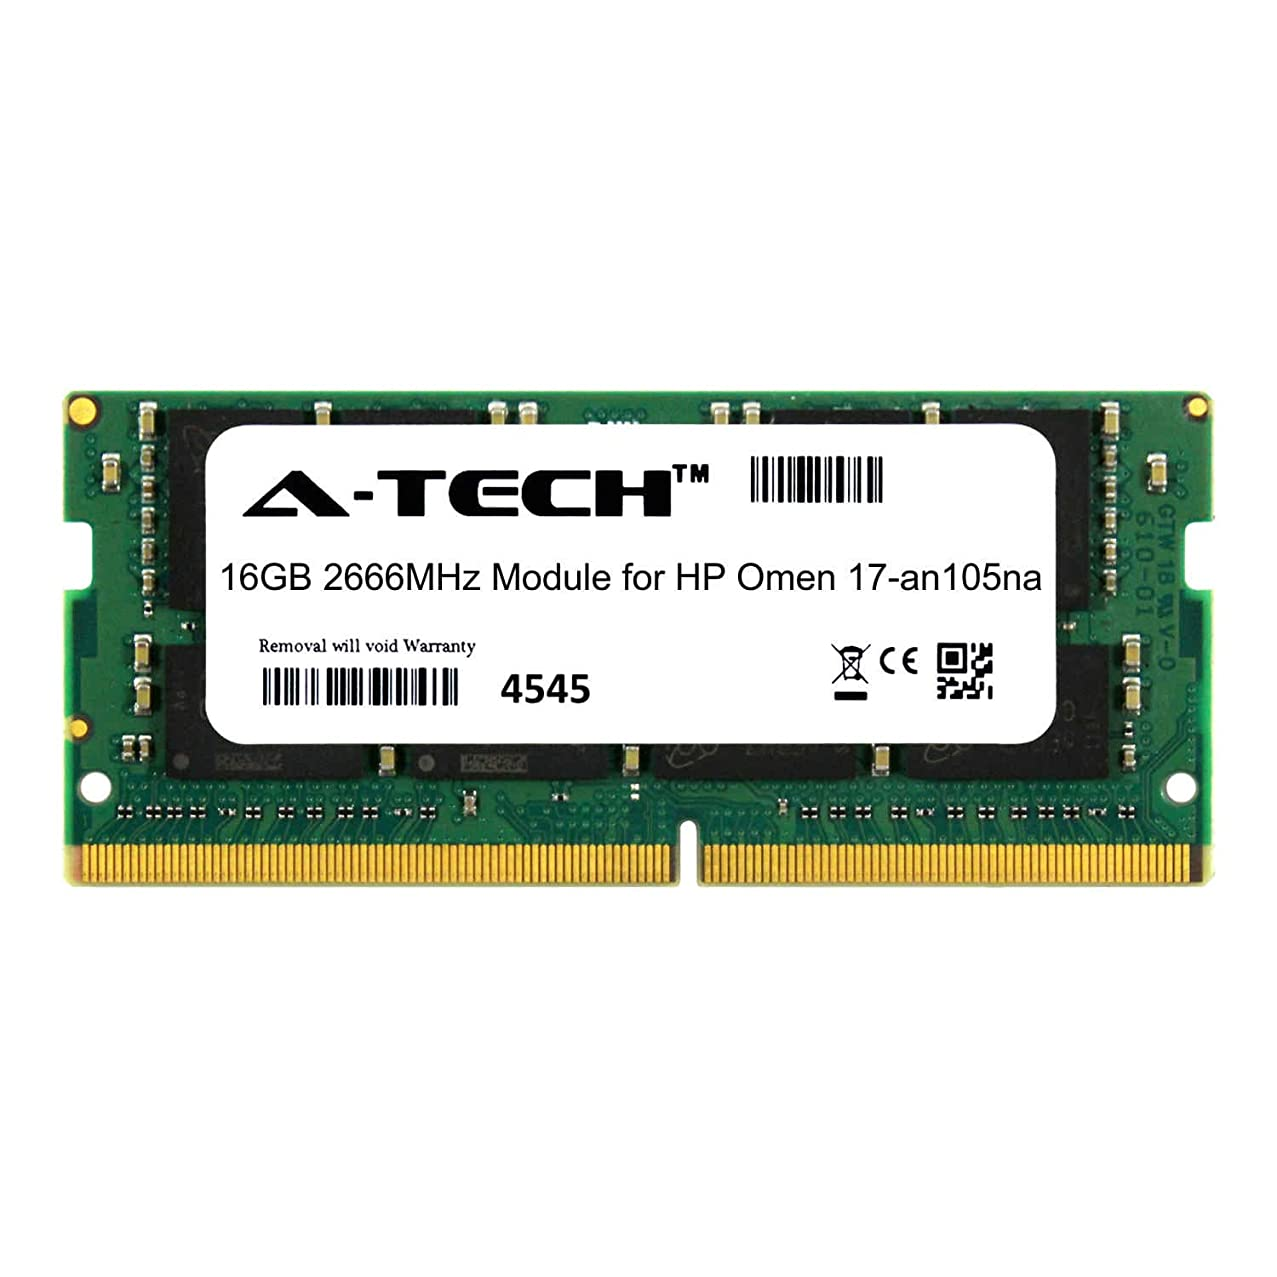 A-Tech 16GB Module for HP Omen 17-an105na Laptop & Notebook Compatible DDR4 2666Mhz Memory Ram (ATMS281171A25832X1)